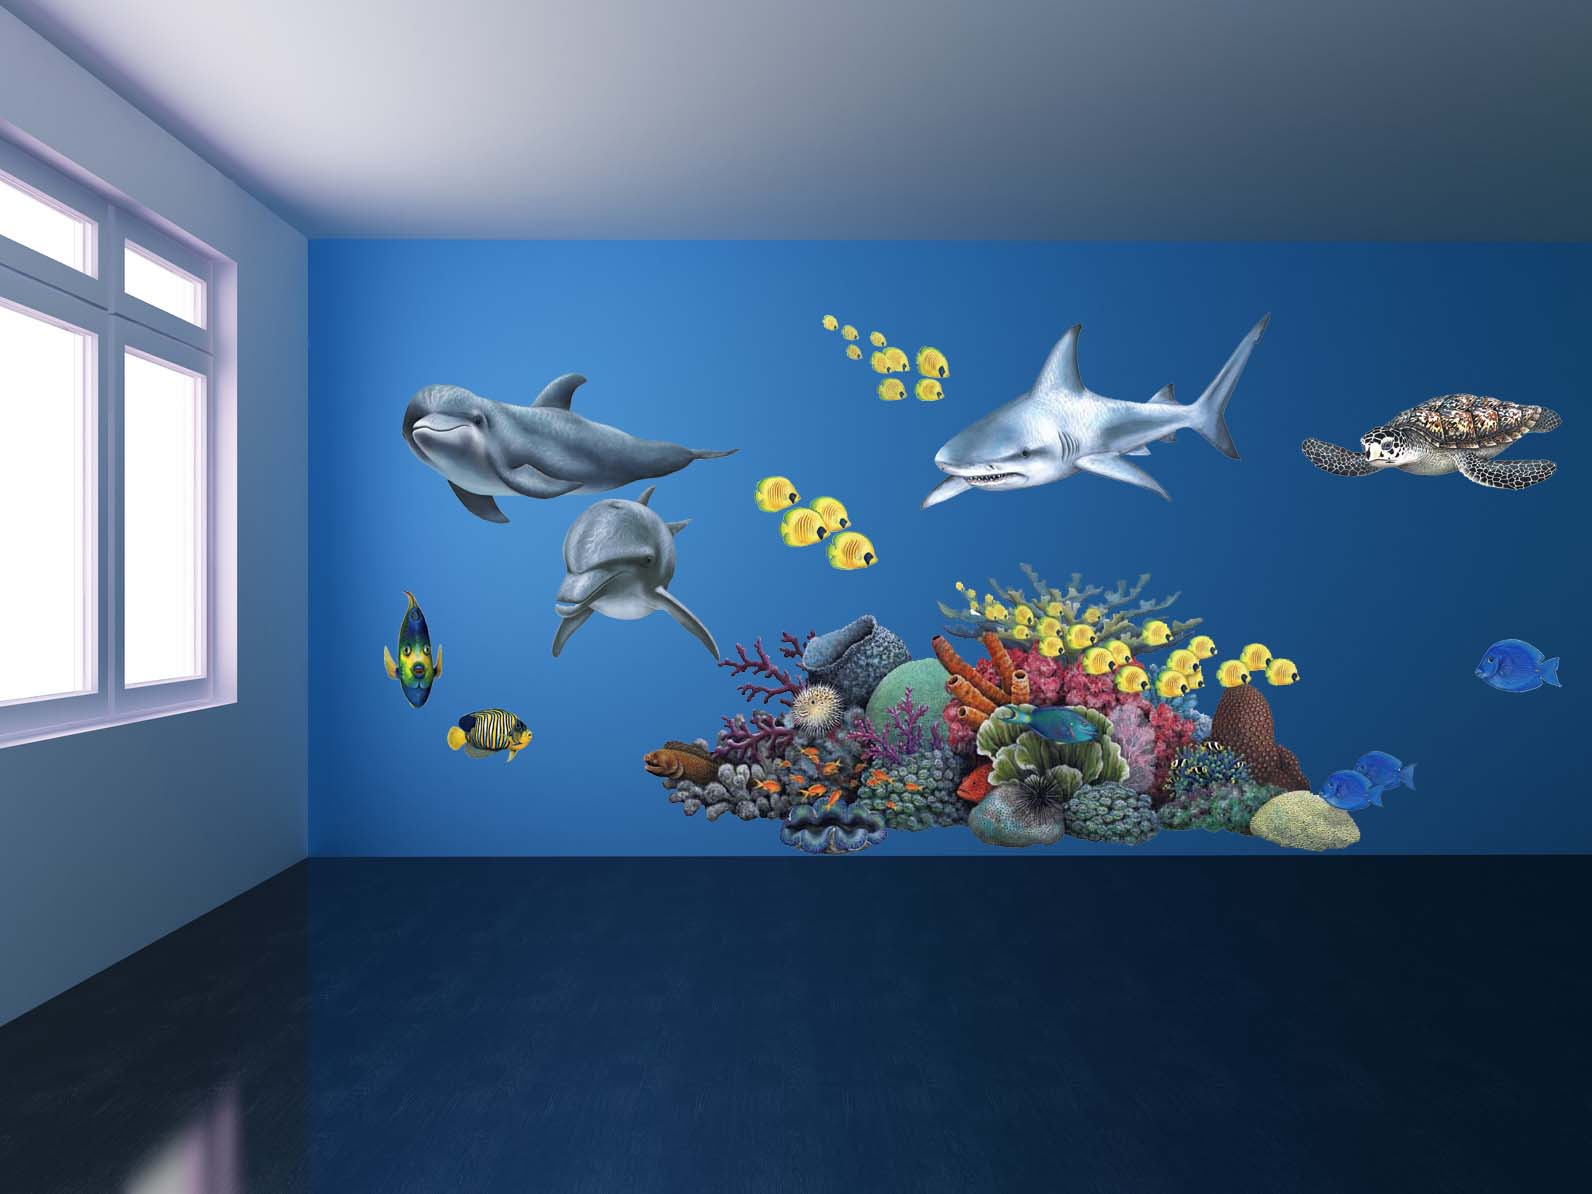 Giant Shark Wall Sticker Giant Animal Decals Fun Decor